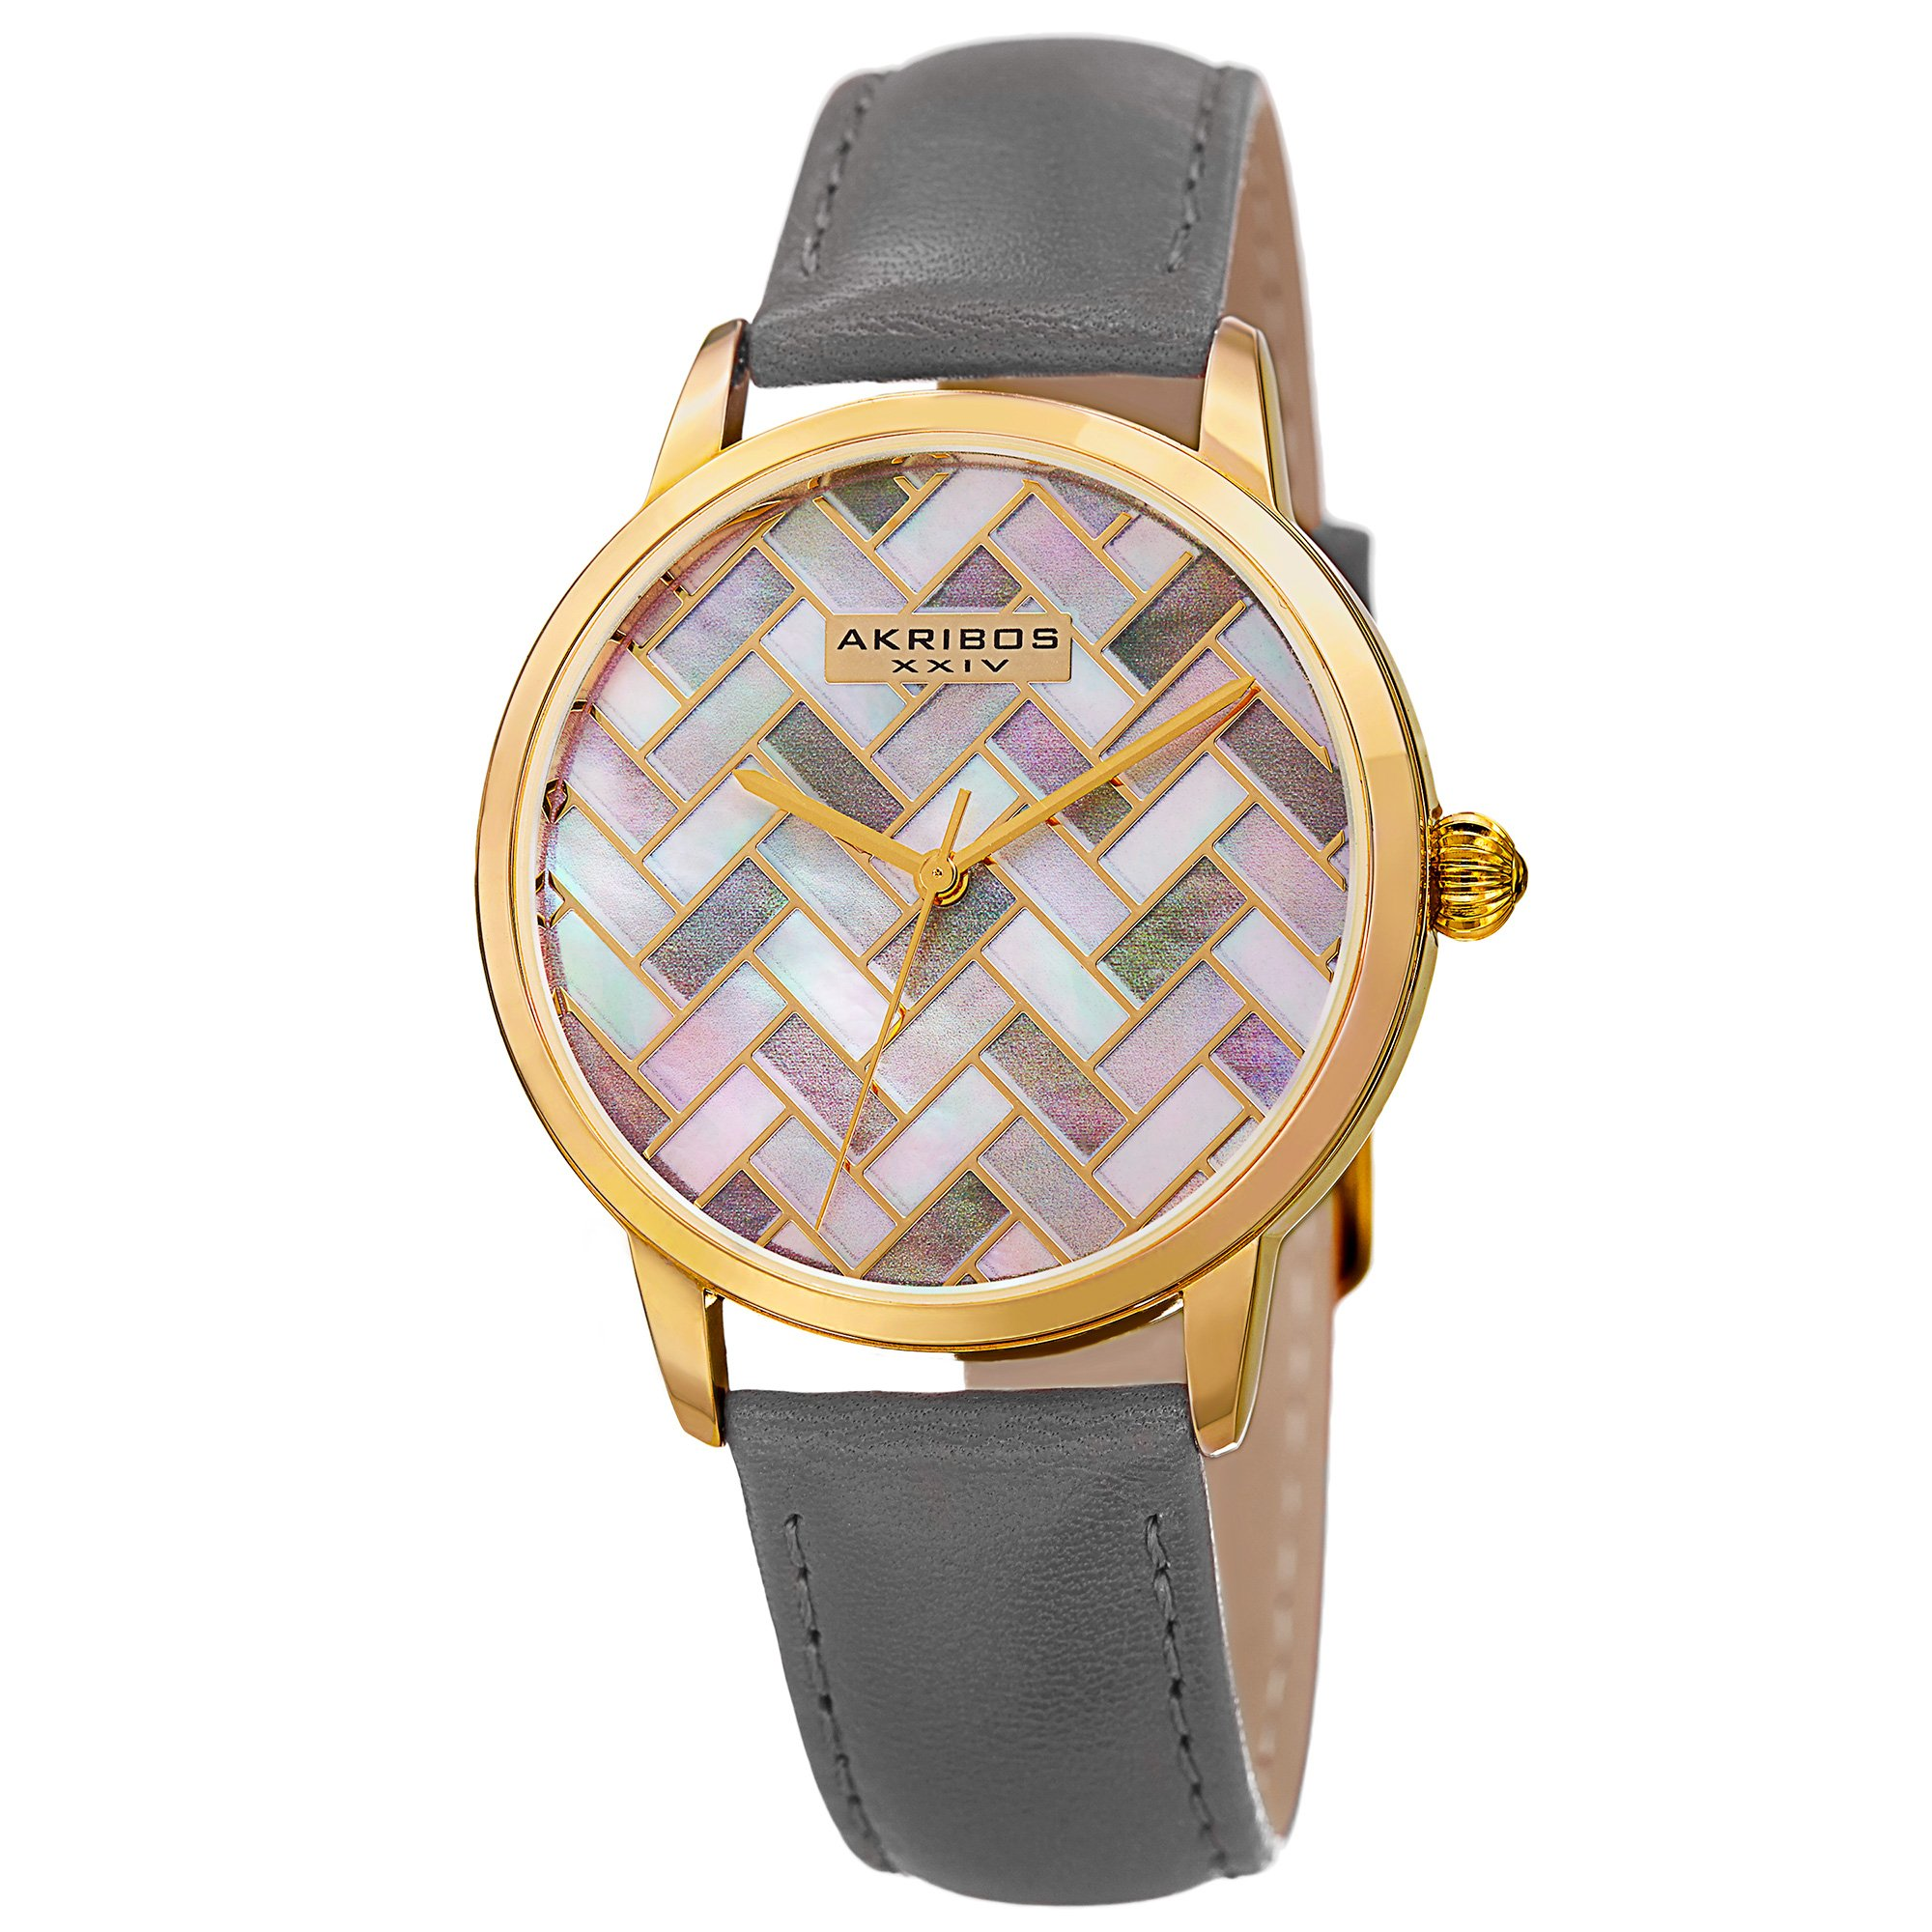 Akribos XXIV Women's Gold-Tone Mother-of-Pearl Mosaic Dial with Grey Glove Style Genuine Leather Strap Watch AK906GY by Akribos XXIV